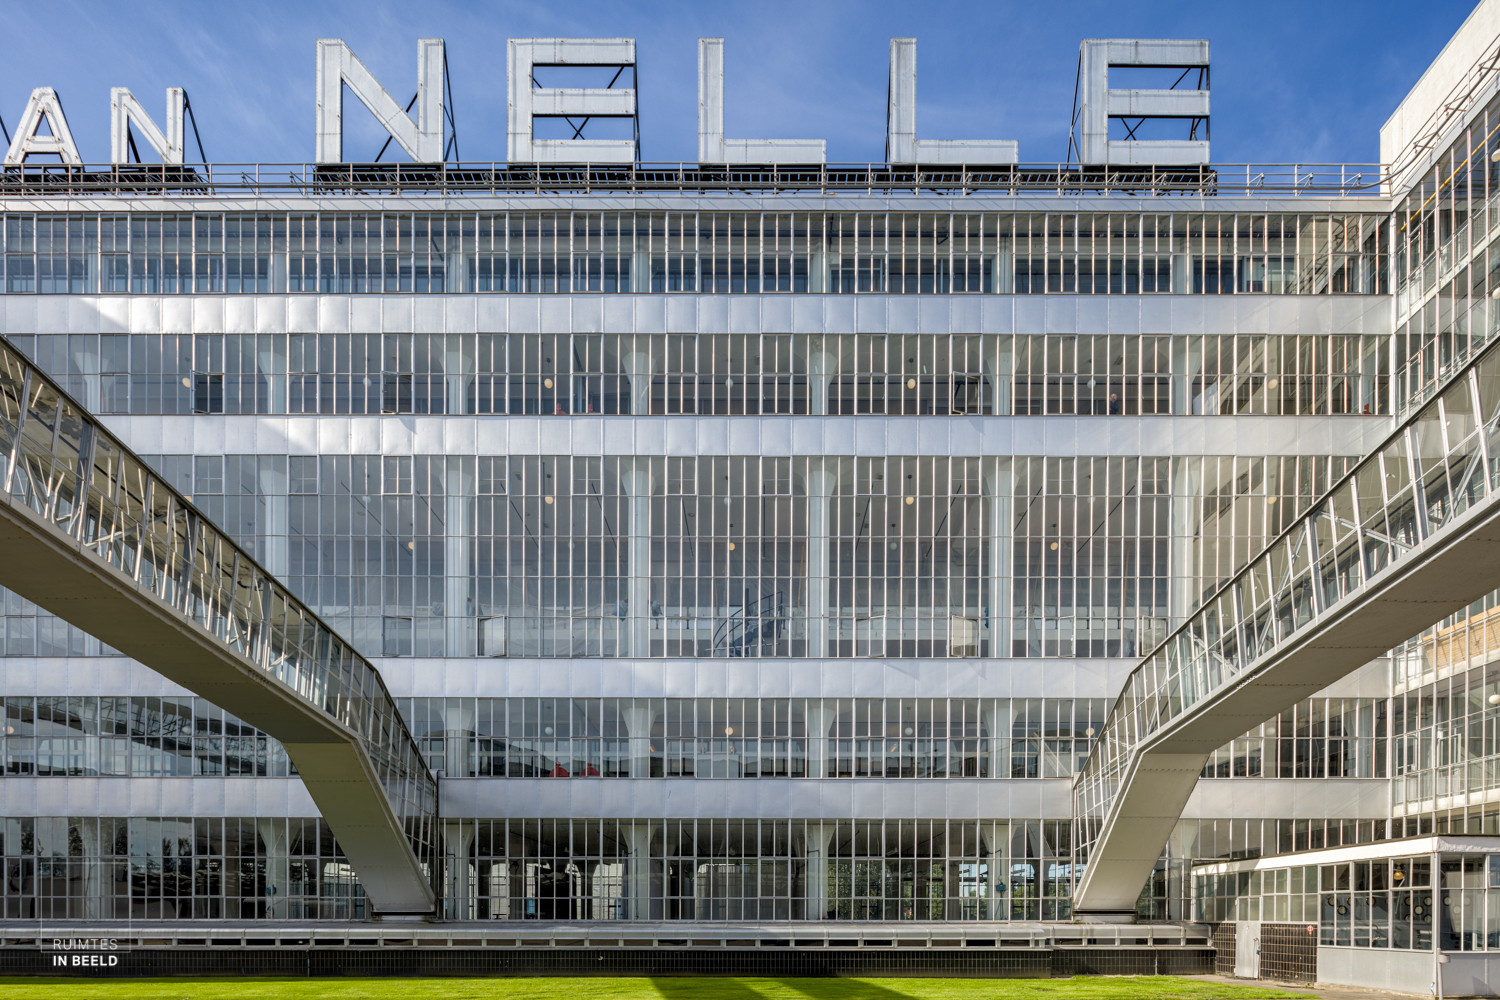 Exterior of the Van Nelle Factory, since 2014 on the list of UNESCO as a World Heritage site